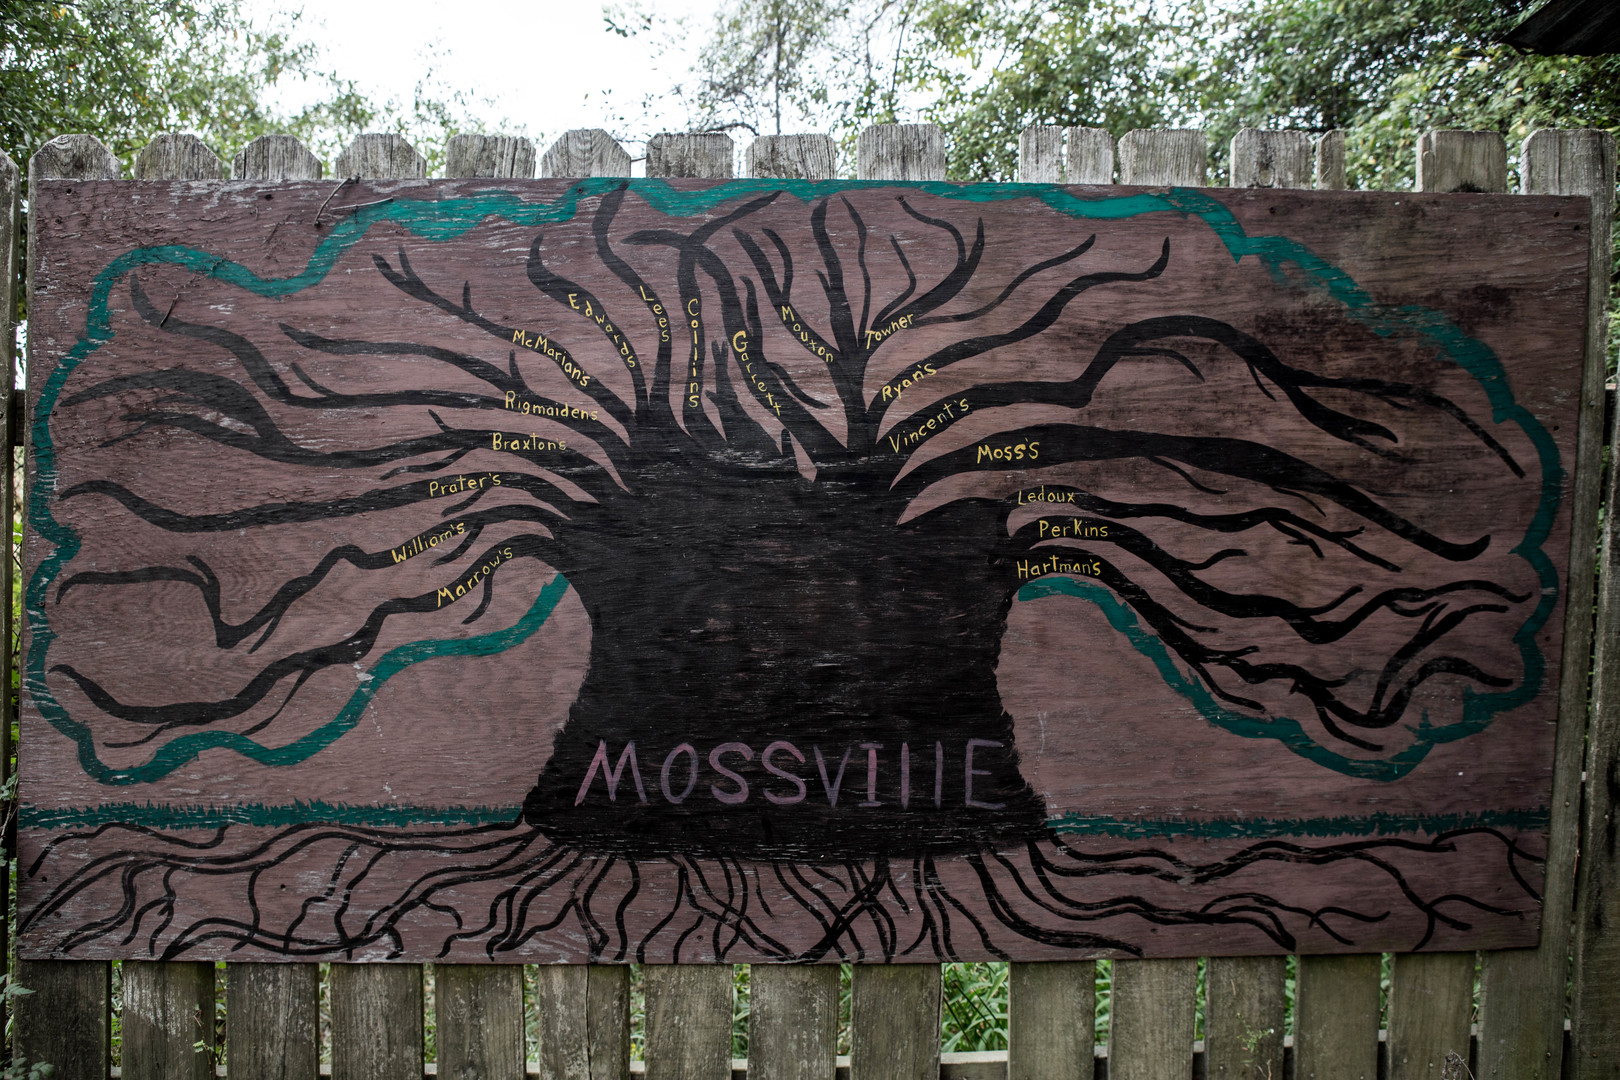 MOSSVILLE_PHOTO_6D_TREEAFRICA.jpg